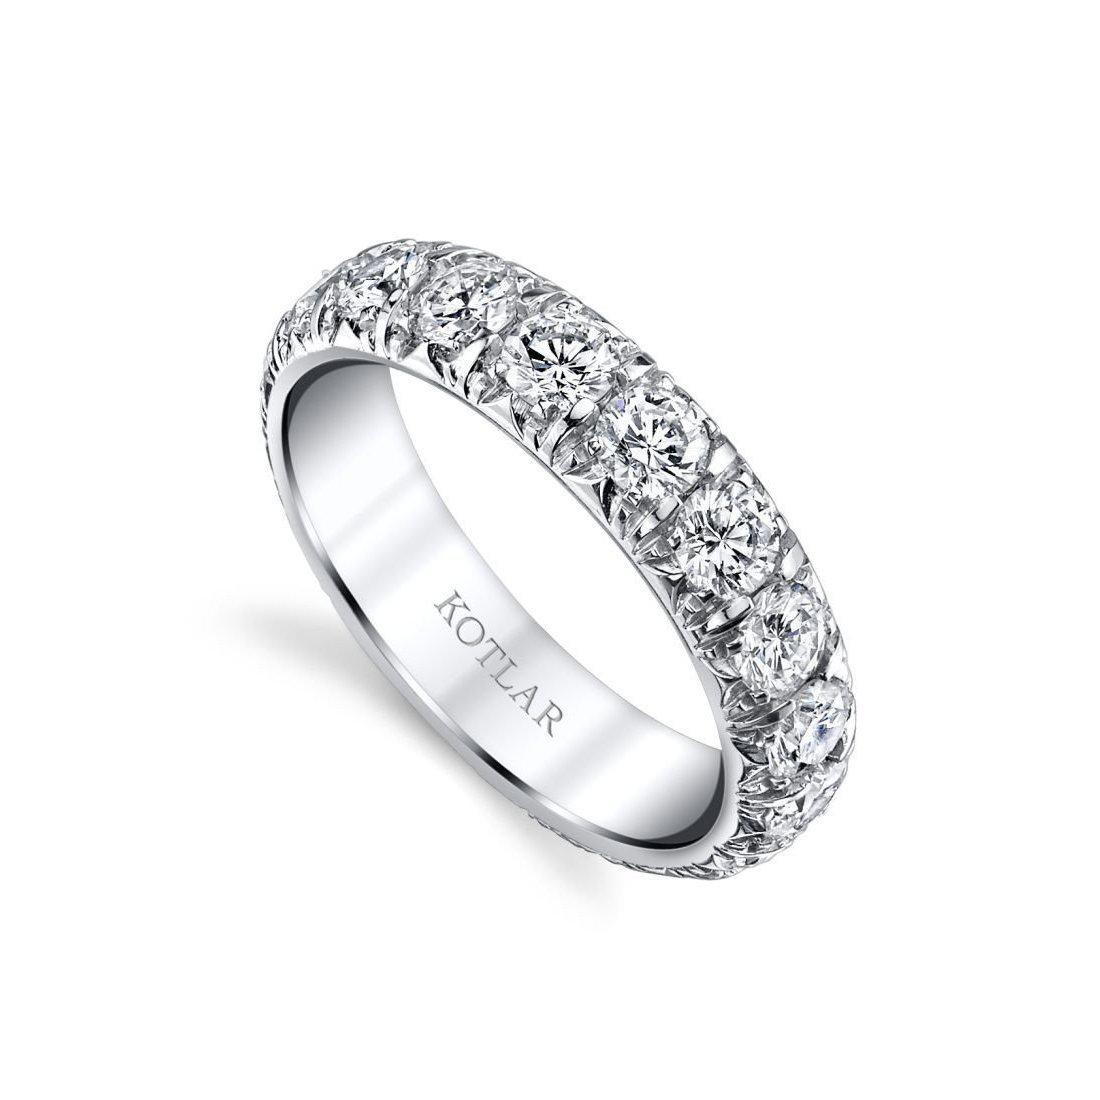 Harry Kotlar French Cut Artisan Pave Band - UK M - US 6 - EU 52 3/4 o2Ucvin